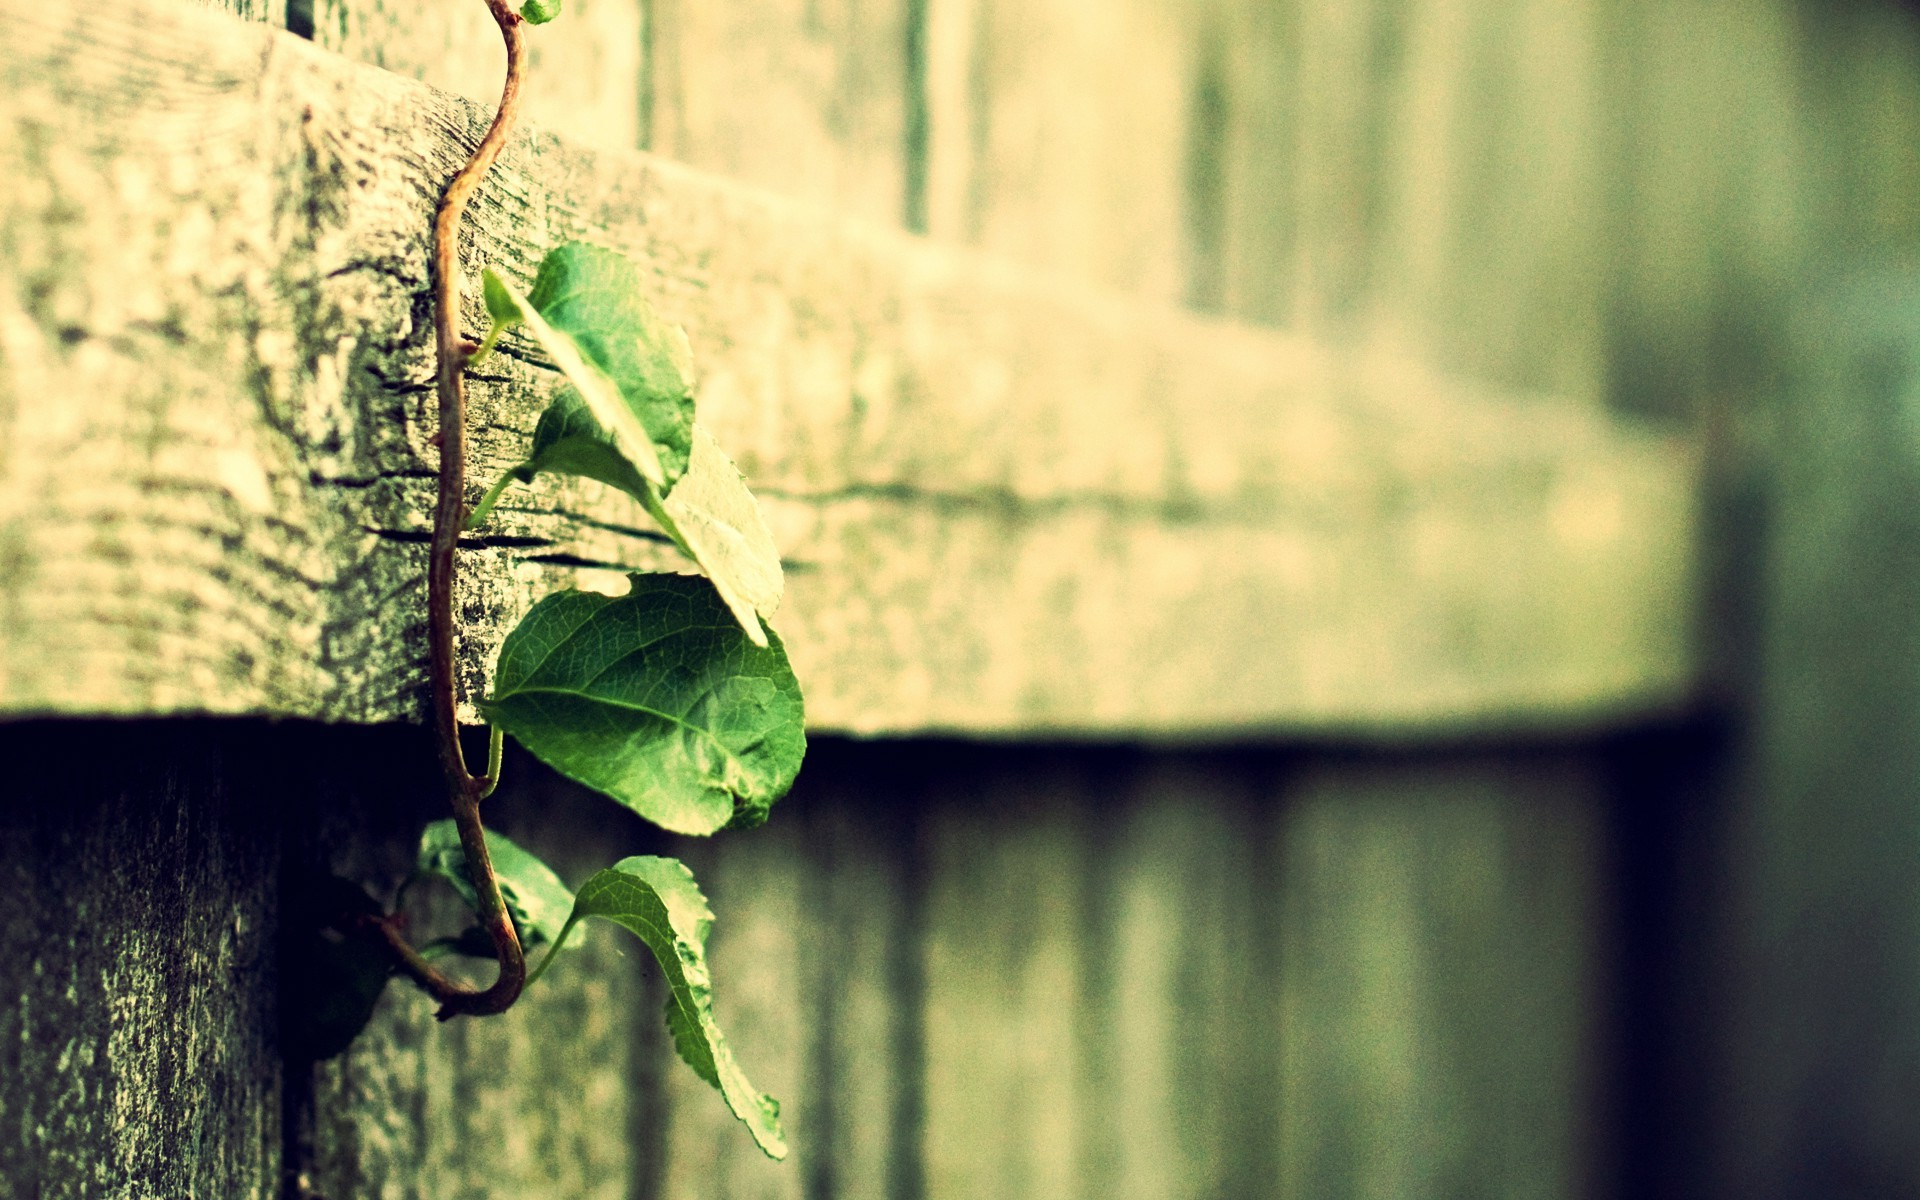 1920x1200 Wood Macro Filter Depth Of Field Plants Vines Leaves Vintage Wallpapers HD Desktop And Mobile Backgrounds